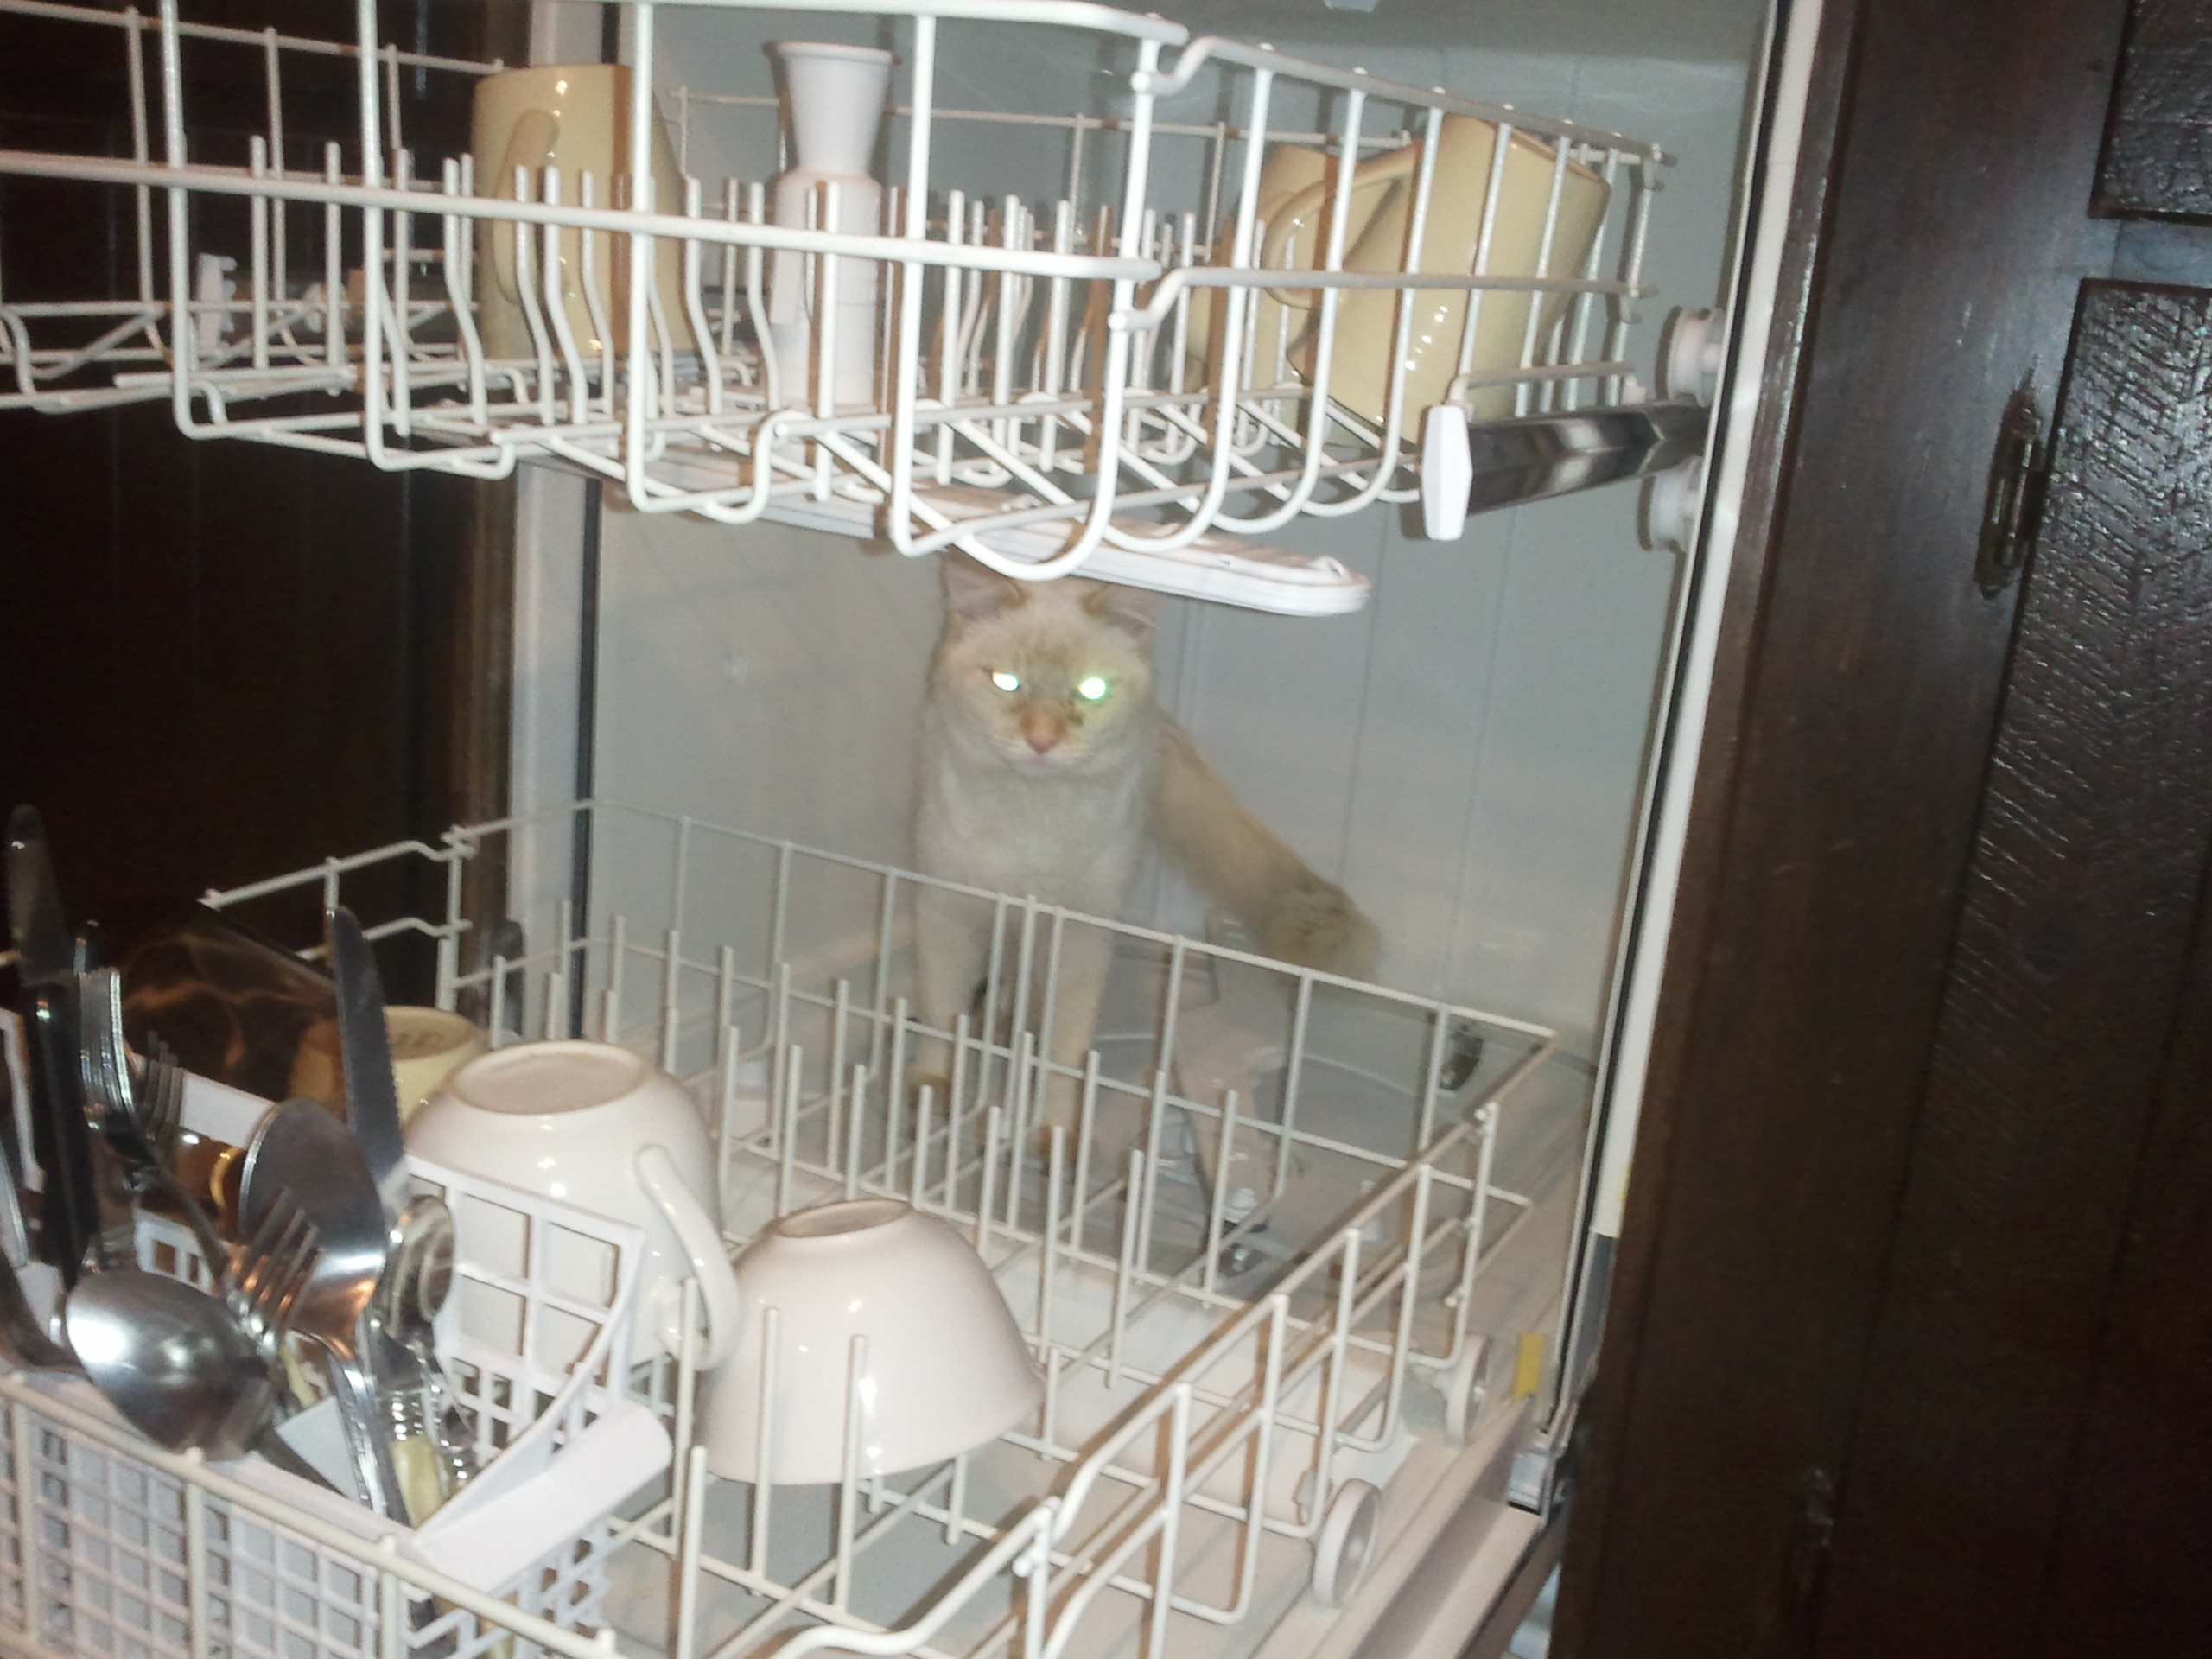 Cat in the dishwasher